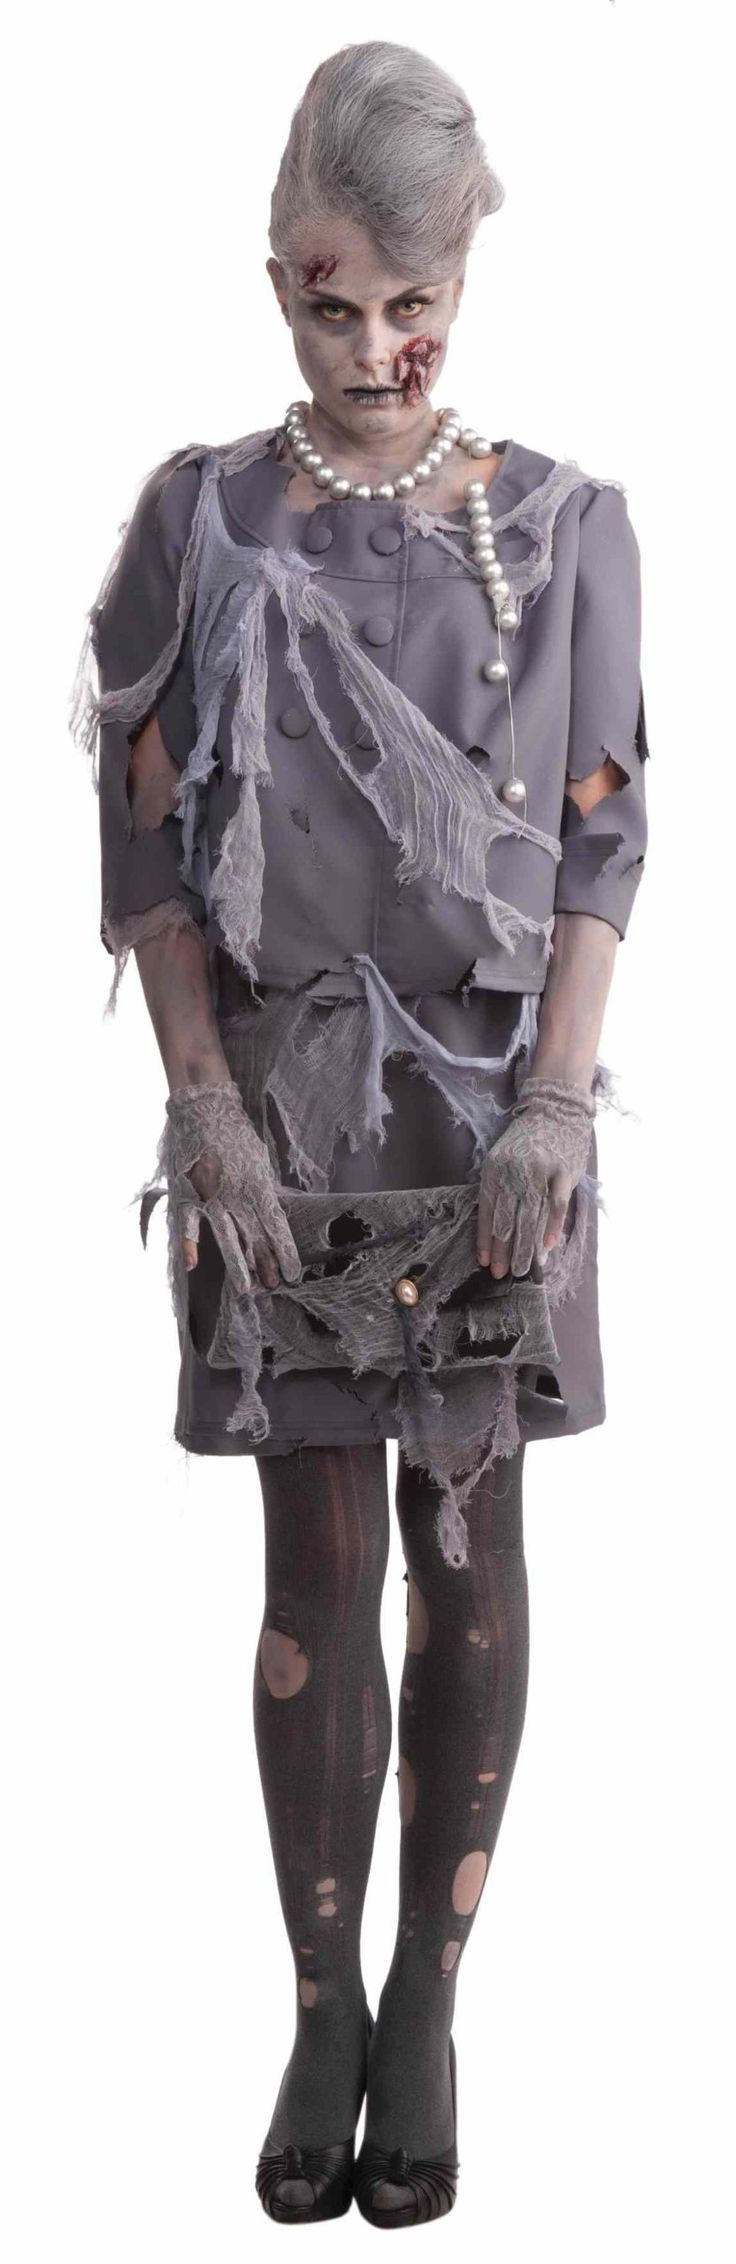 Amazon.com: Woman's Zombie Costume, Gray, One Size: Adult Sized Costumes: Clothing